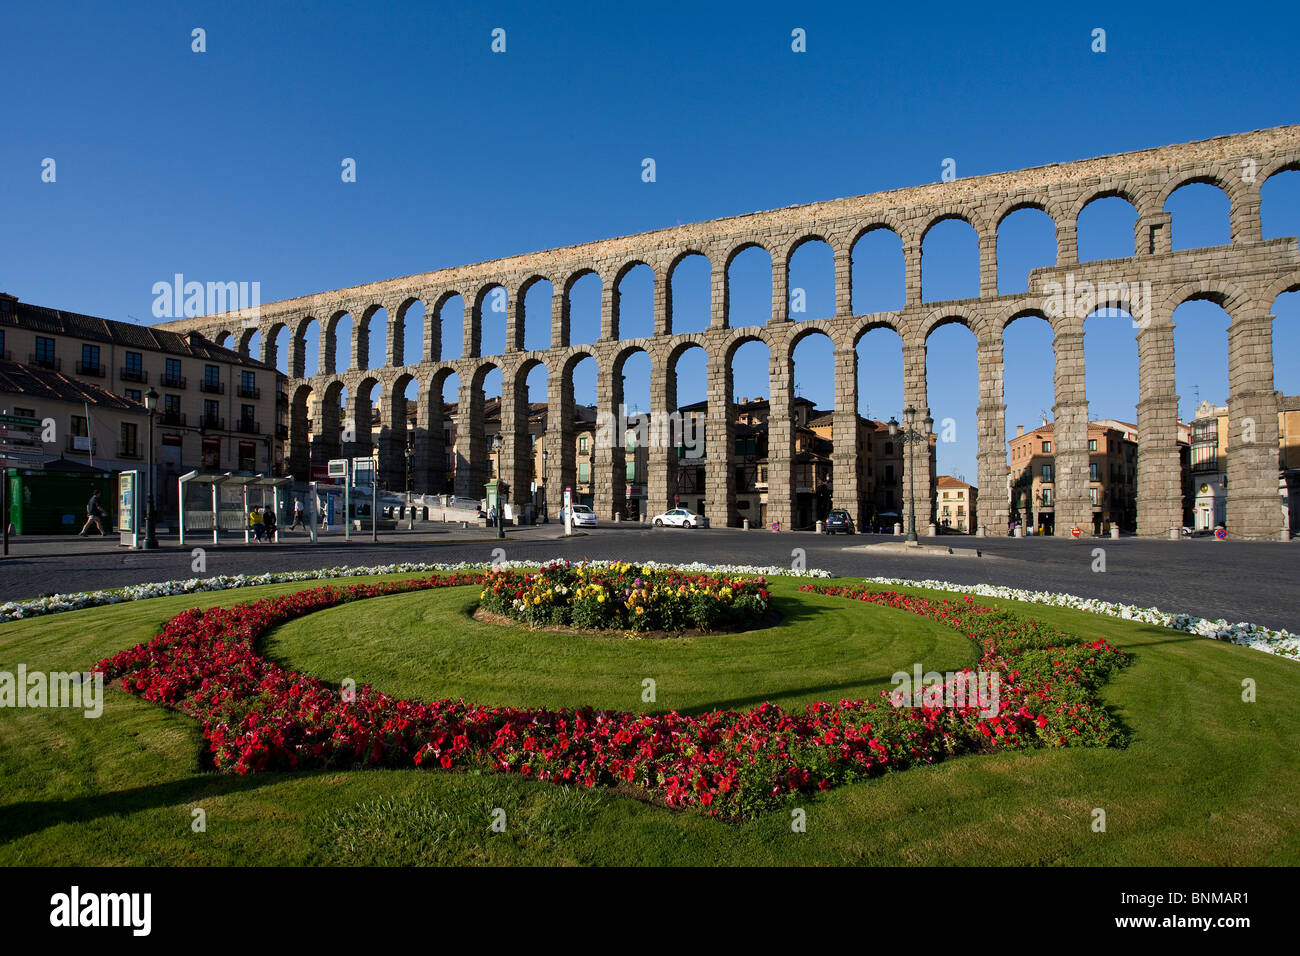 Spain Castile and Leon Segovia aqueduct Roman place space flowers holidays travel, - Stock Image